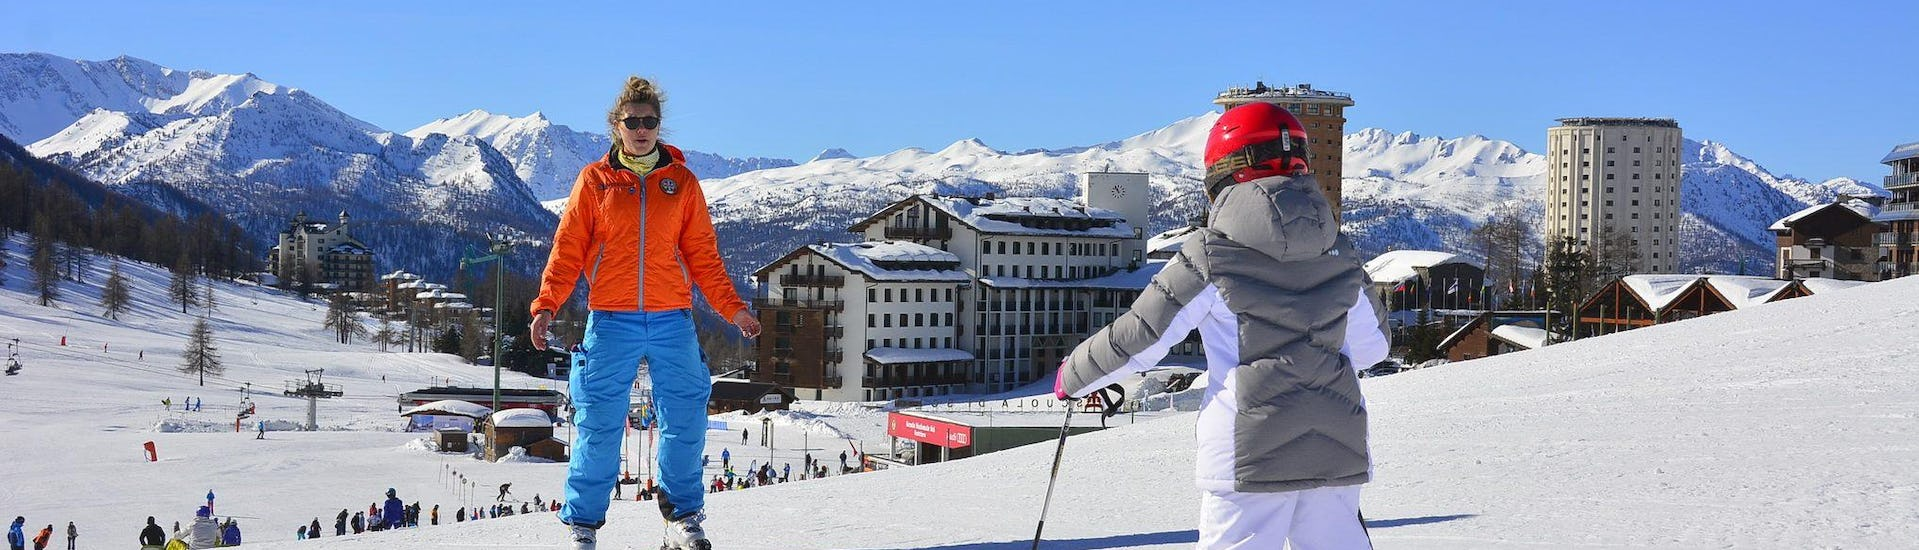 kids-ski-lessons-3-6-years-holidays-small-group-yes-academy-sestriere-hero